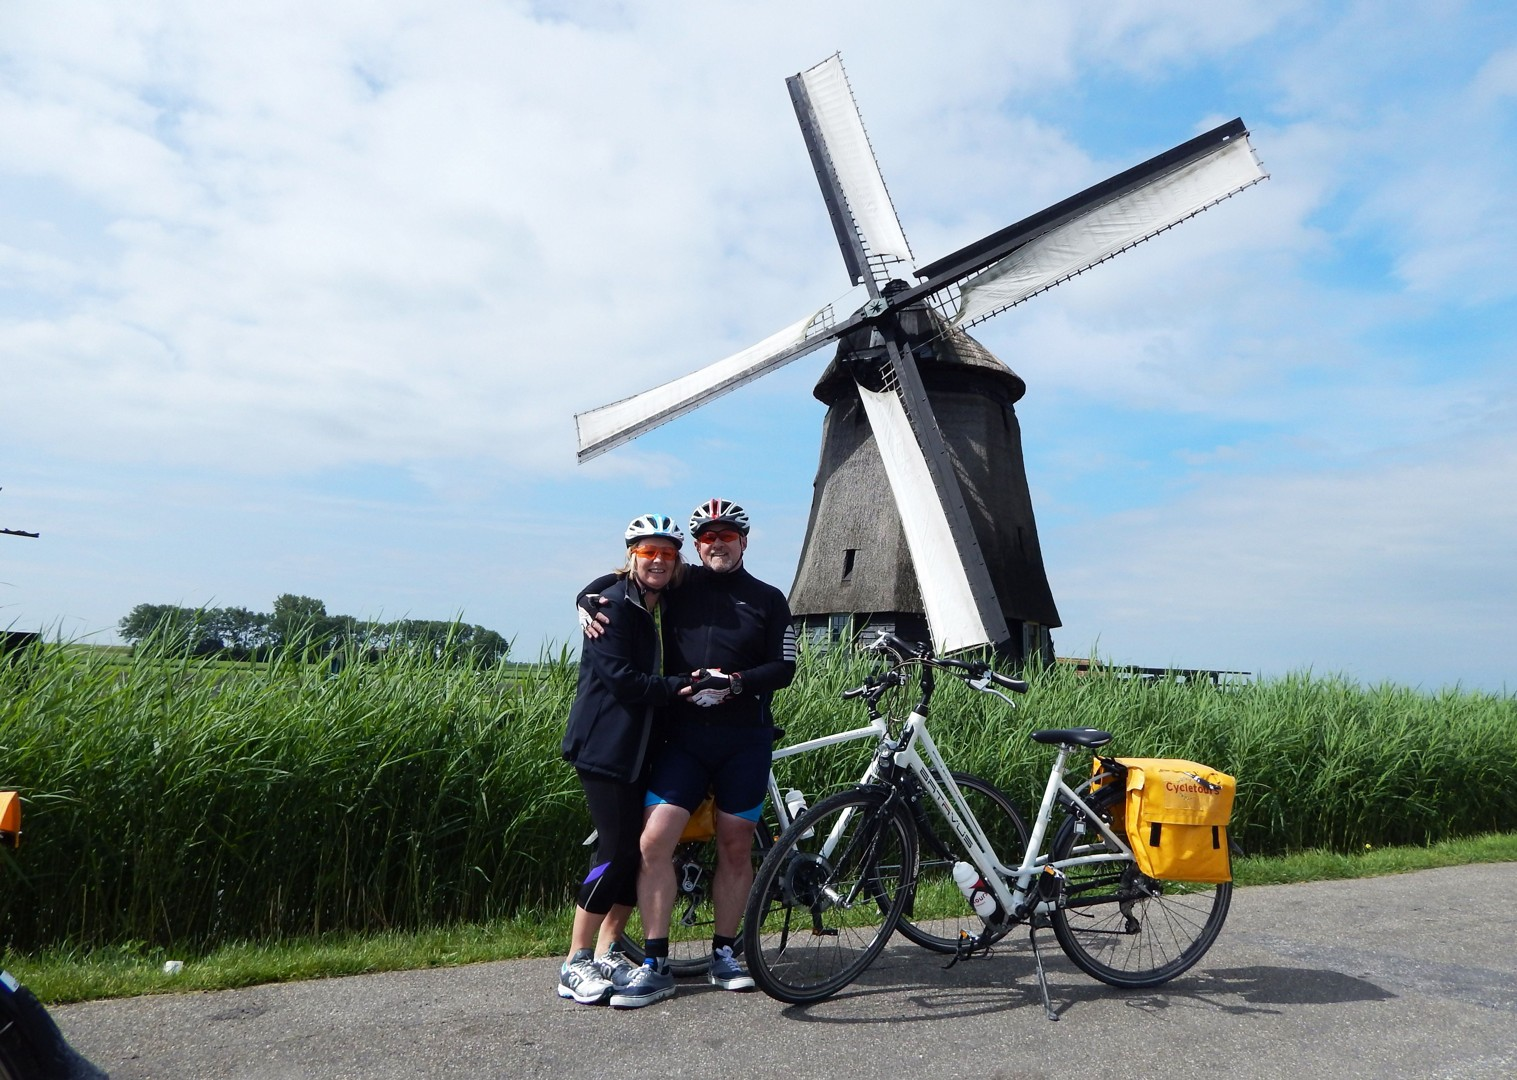 bike-and-barge-holiday-in-holland.jpg - Holland - Windmills and Golden Beaches - Bike and Barge Holiday - Family Cycling